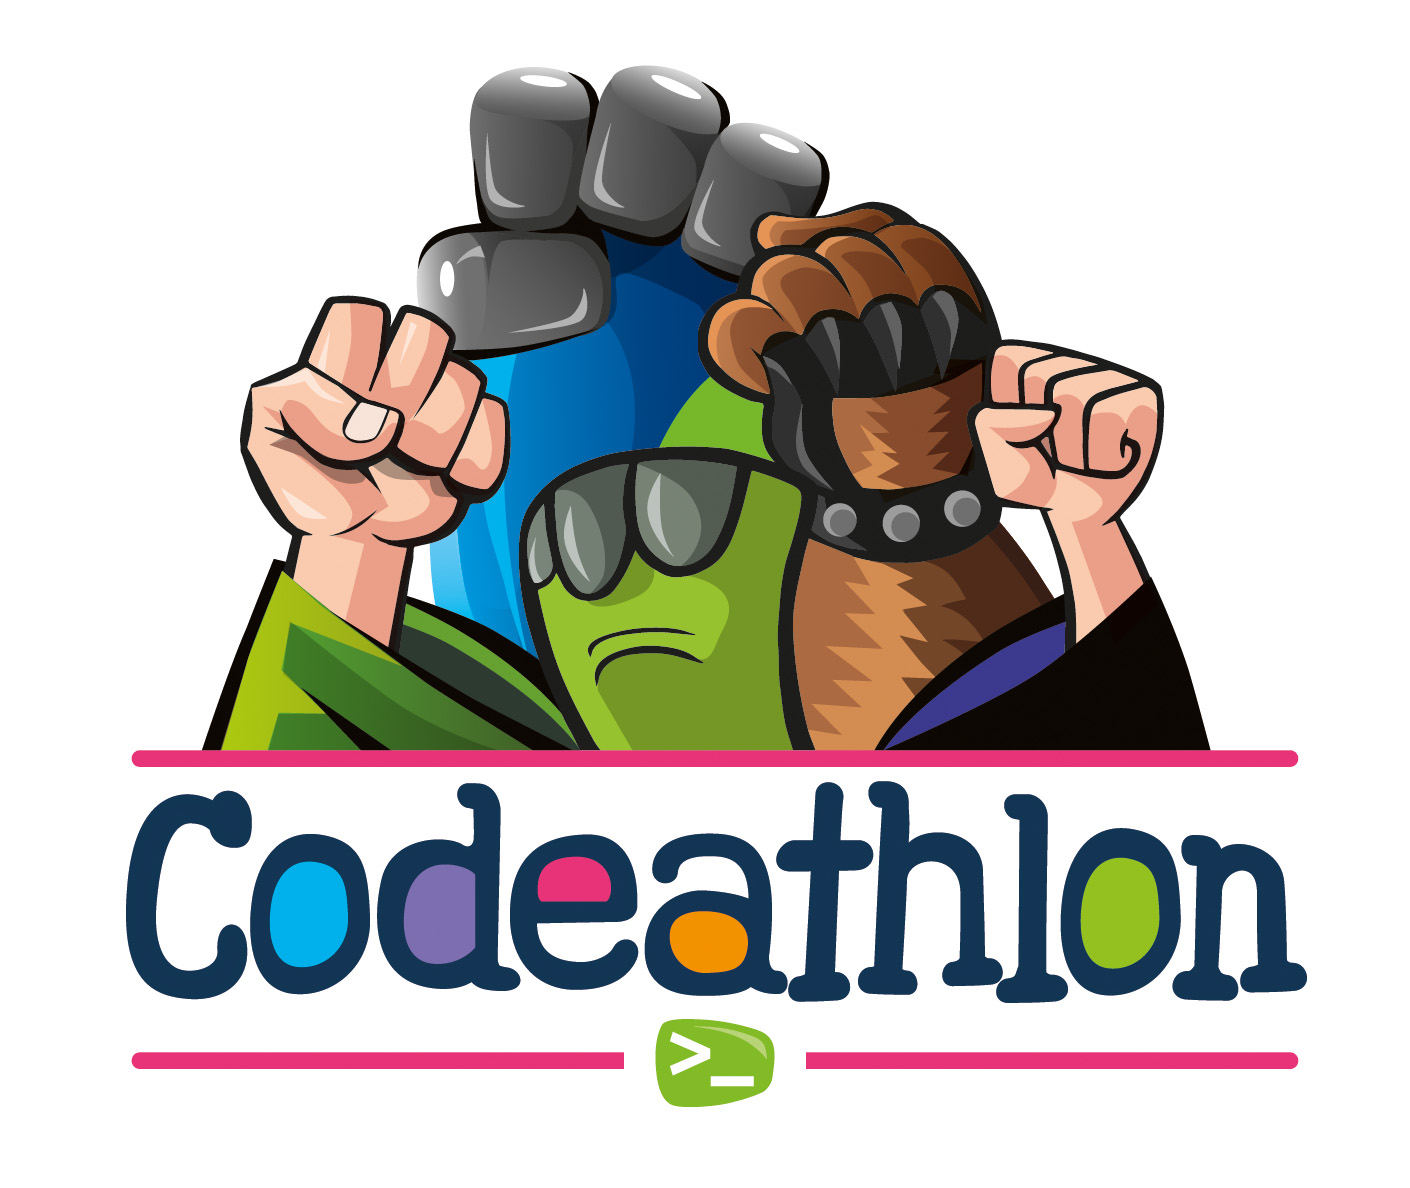 Abiertas las inscripciones de la Codeathlon Winter Edition